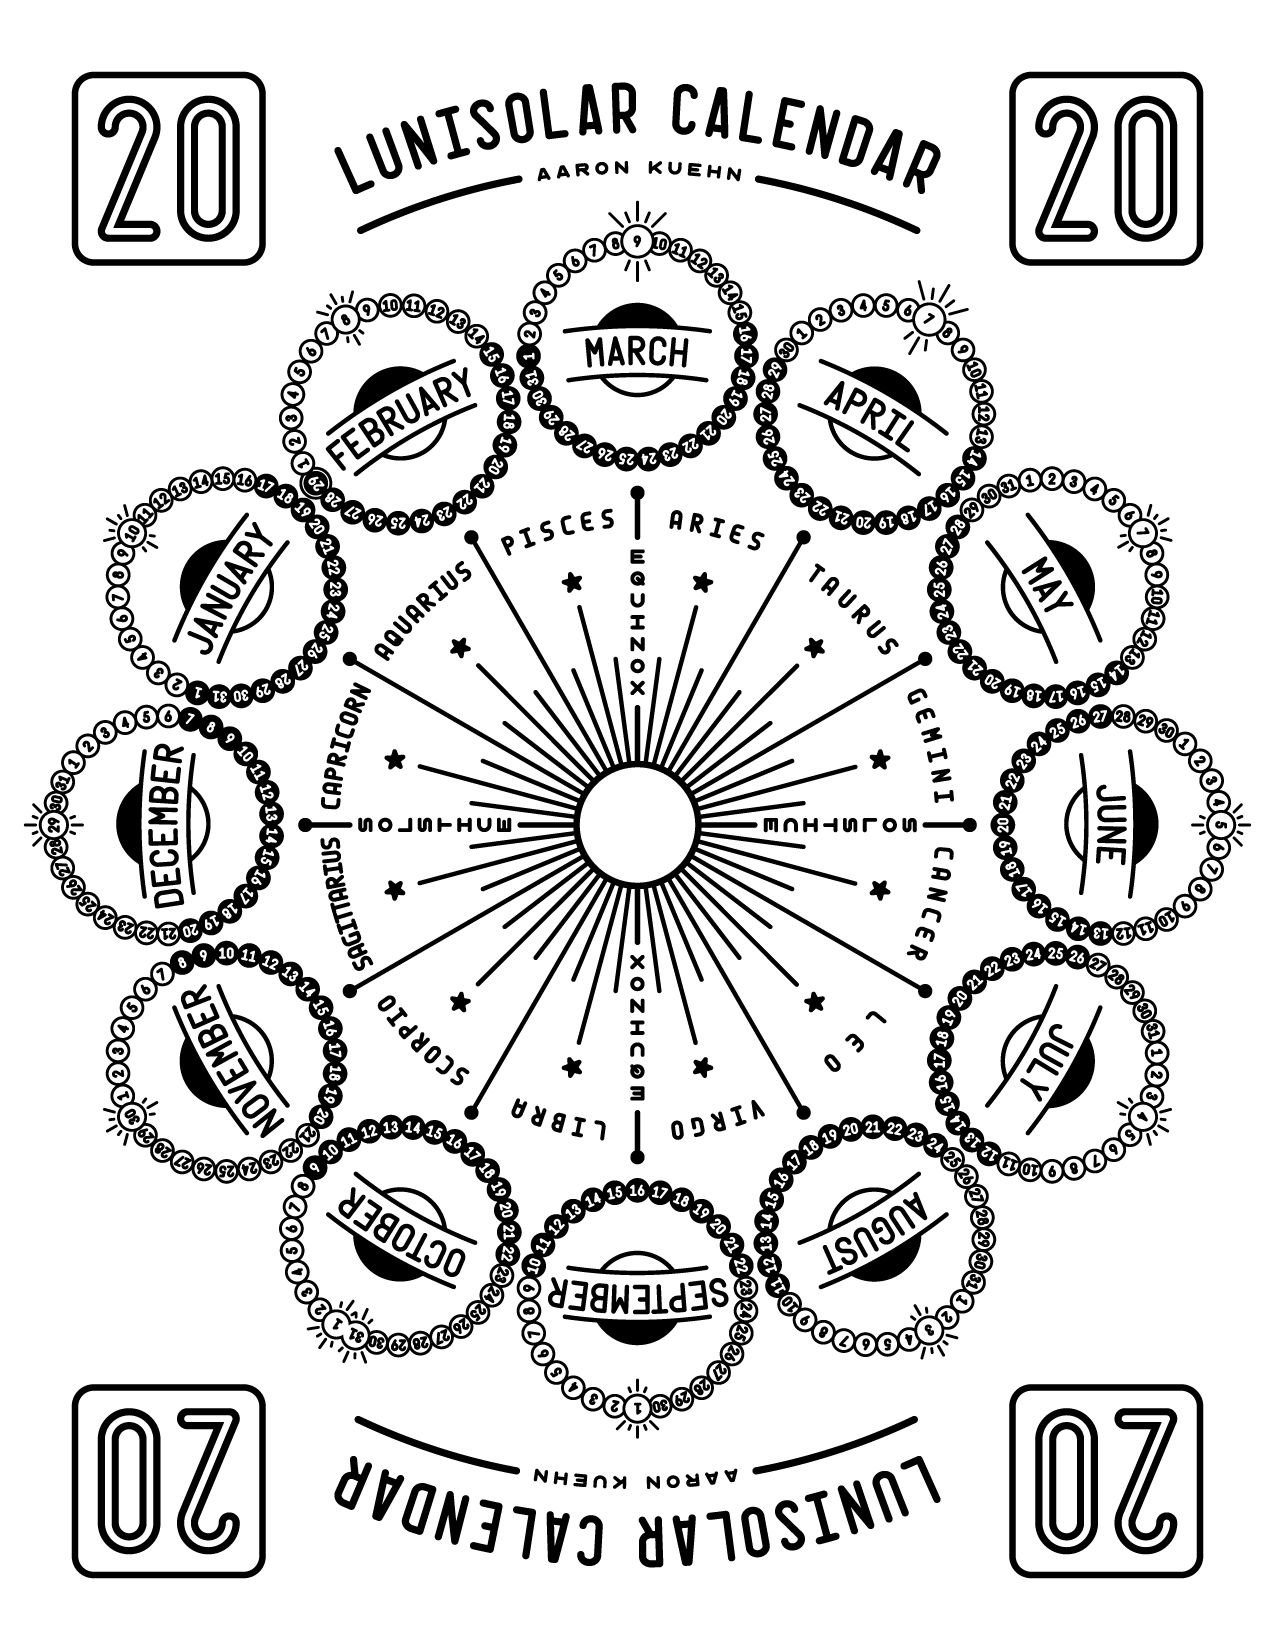 A calendar for 2020 with days indicating Moon phase and time of the synodic/solar year.